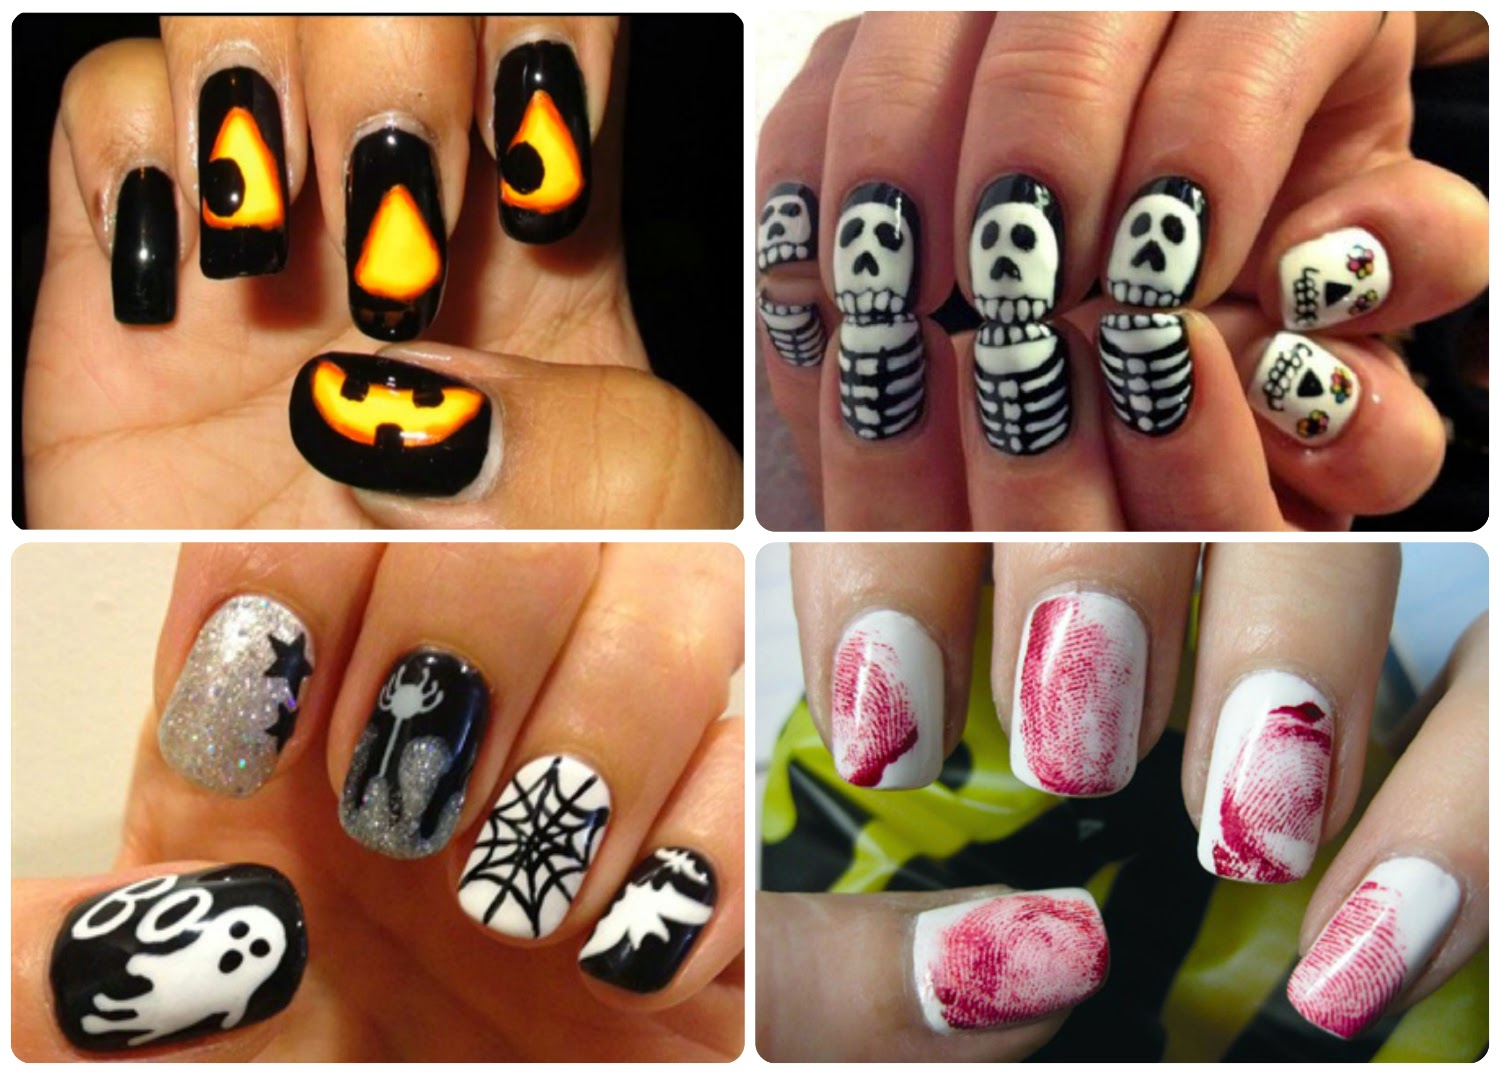 If you're not keen on wearing a costume, why not try these Halloween nail art ideas?